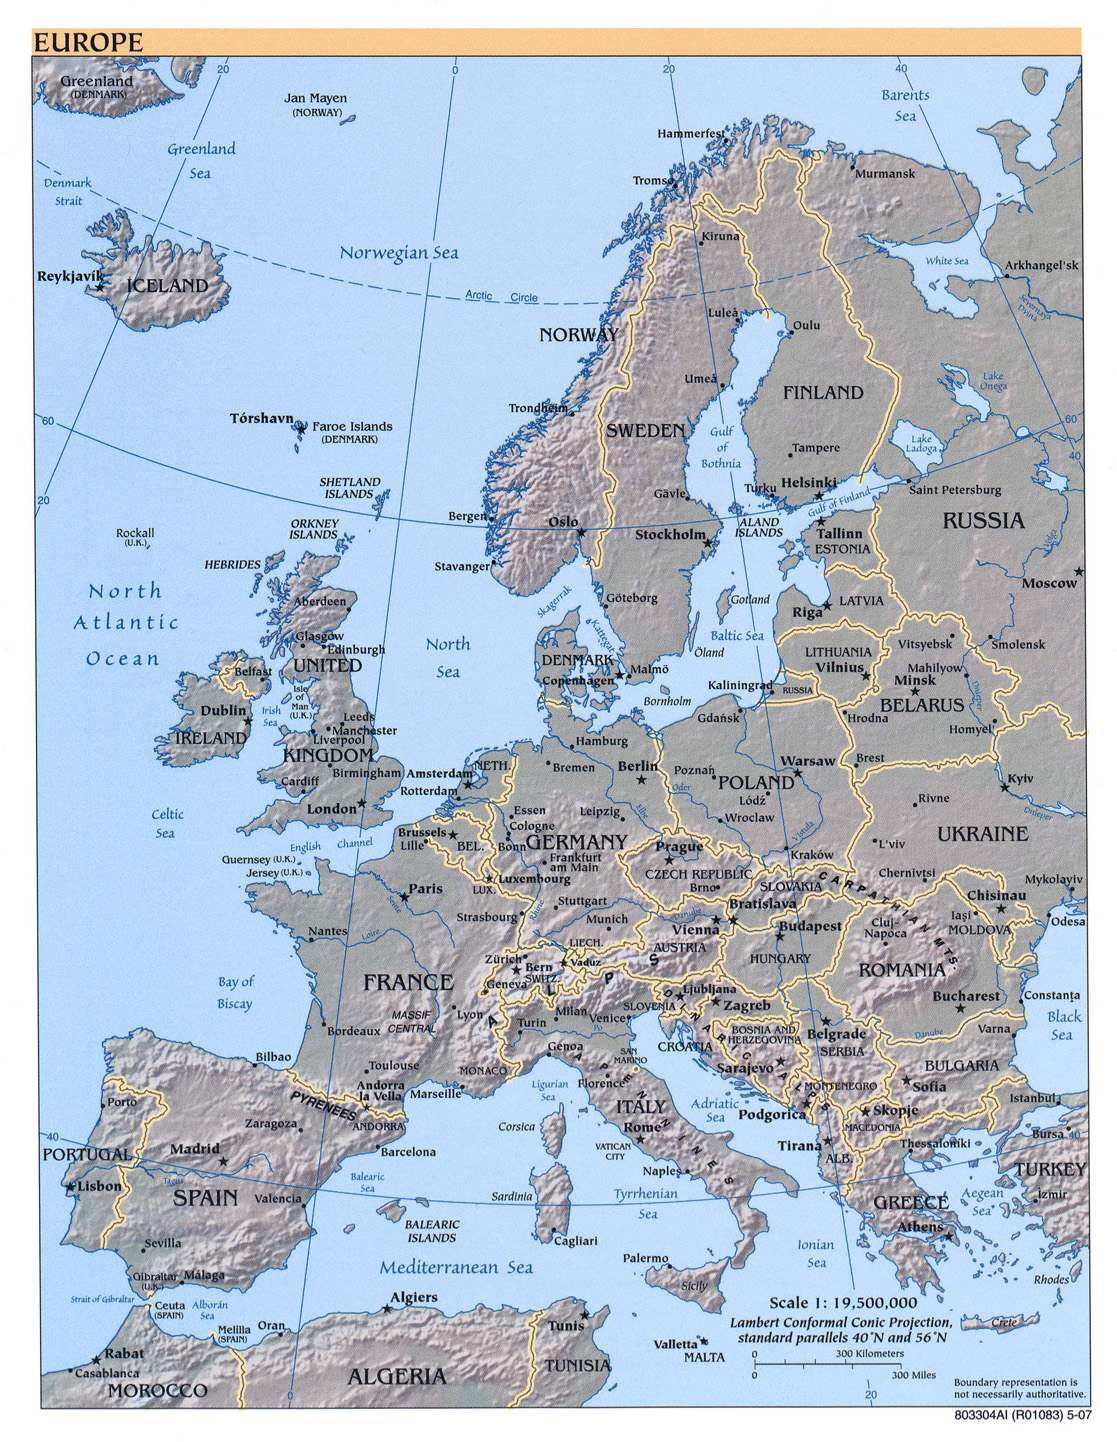 Maps Update 728642 All Europe Map Europe Map Map of Europe – Map of All Europe